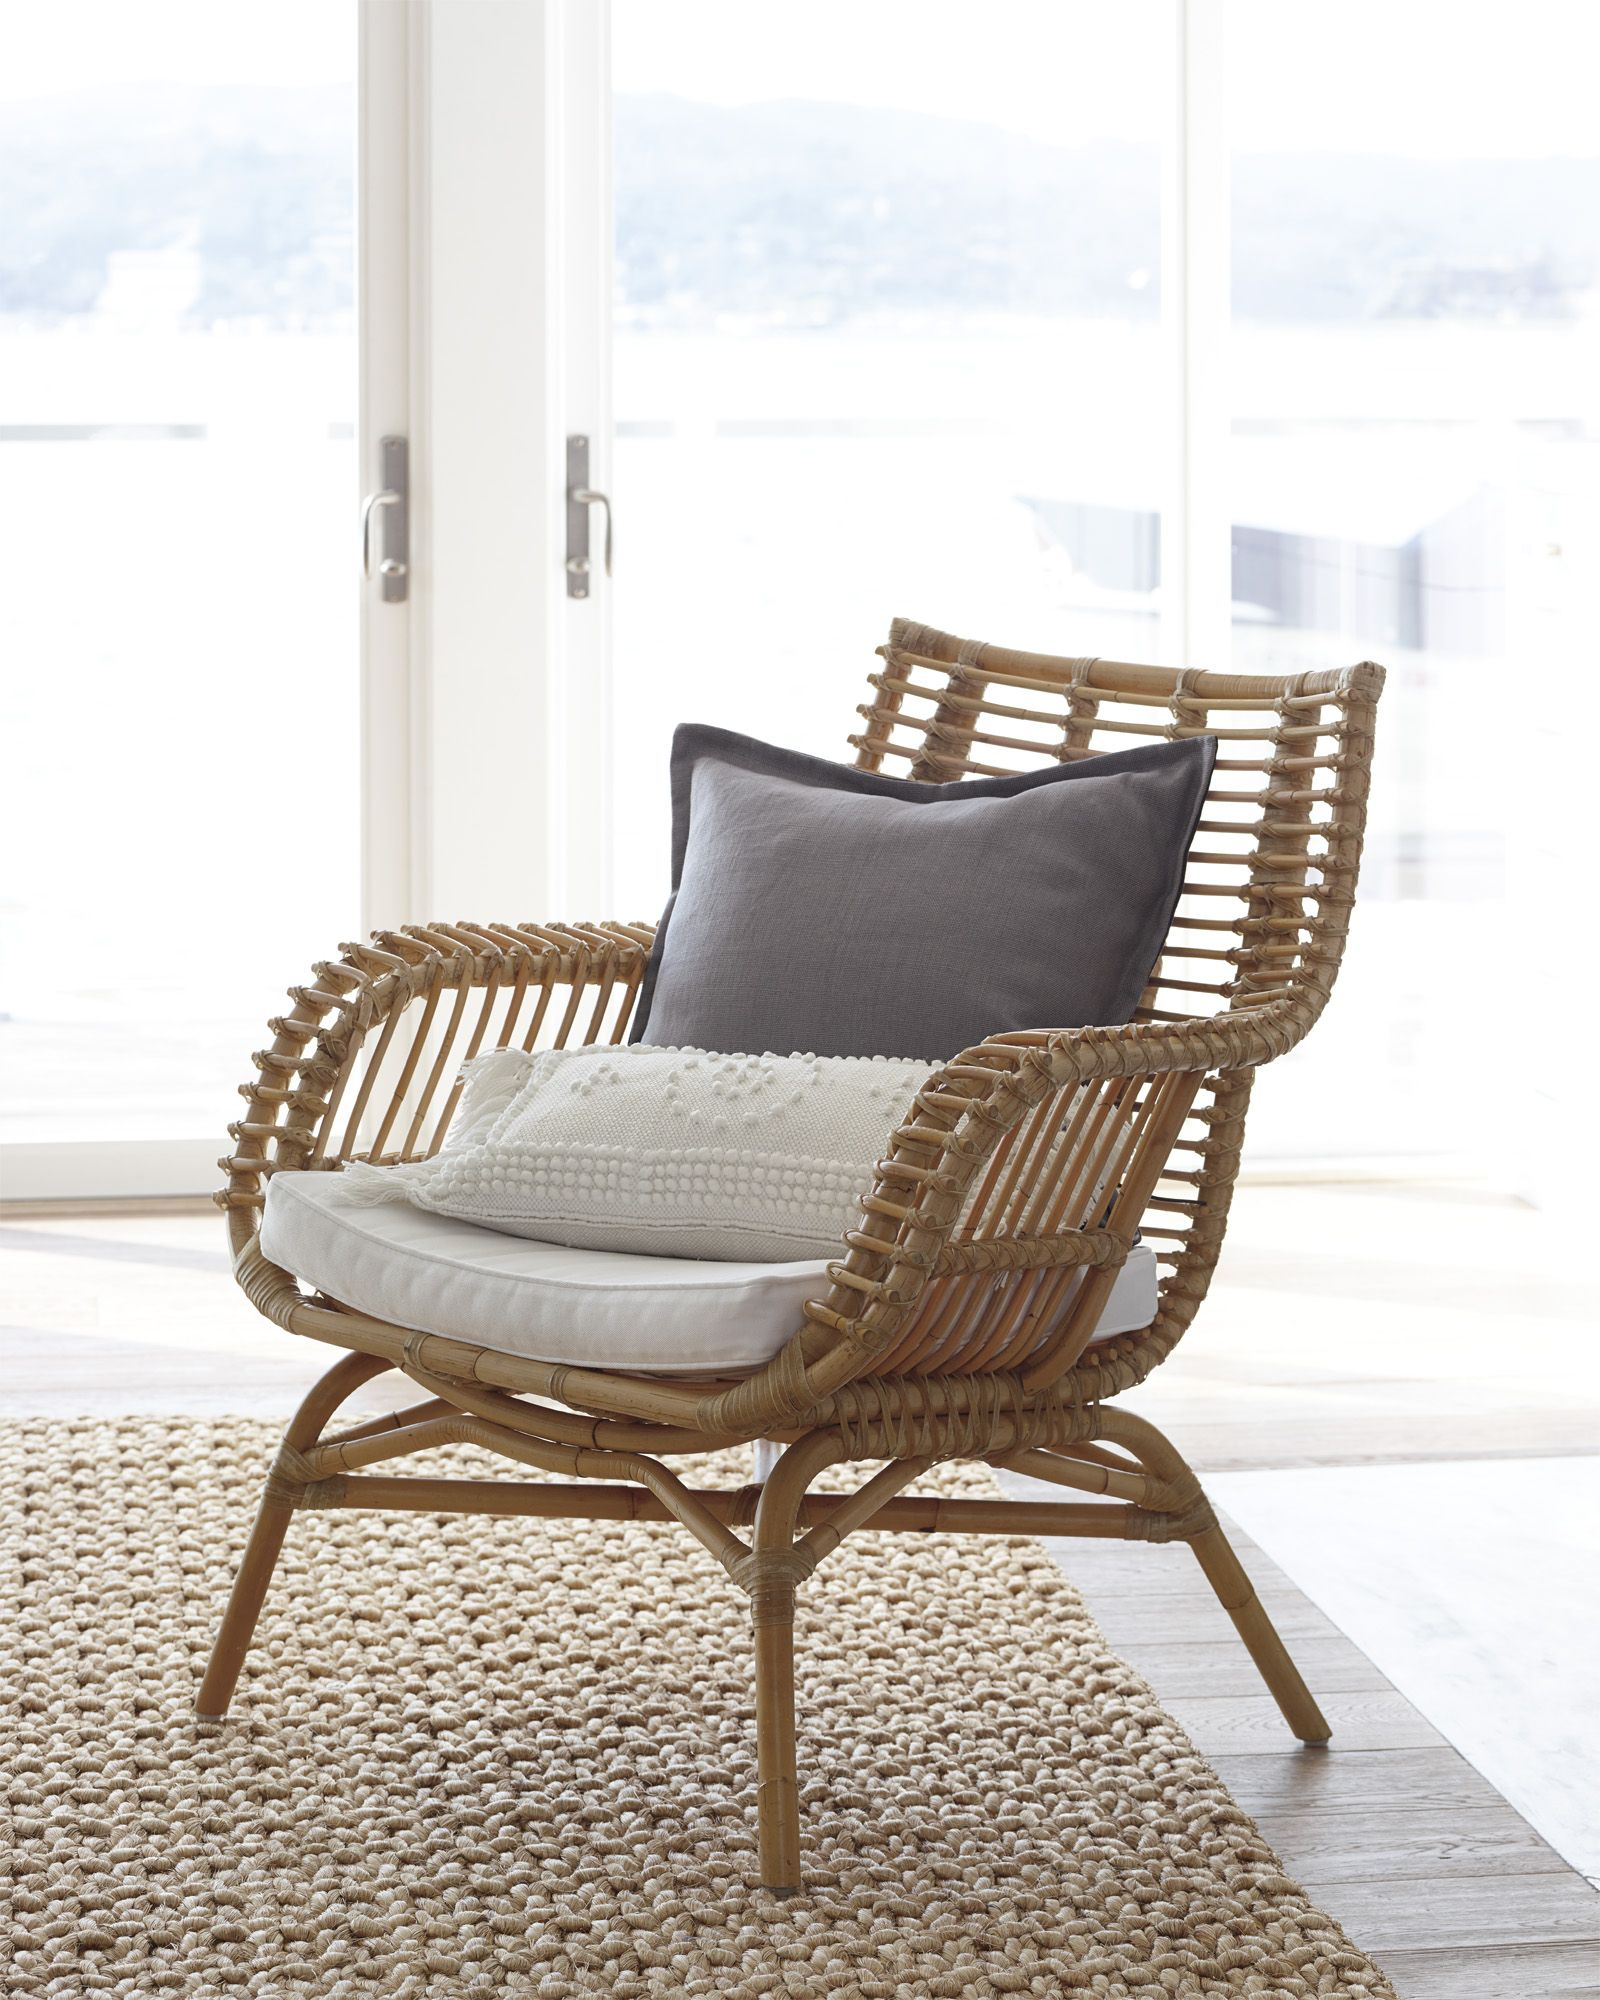 Rattan Chairs Venice Rattan Chair In 2019 C A V E Pinterest Rattan